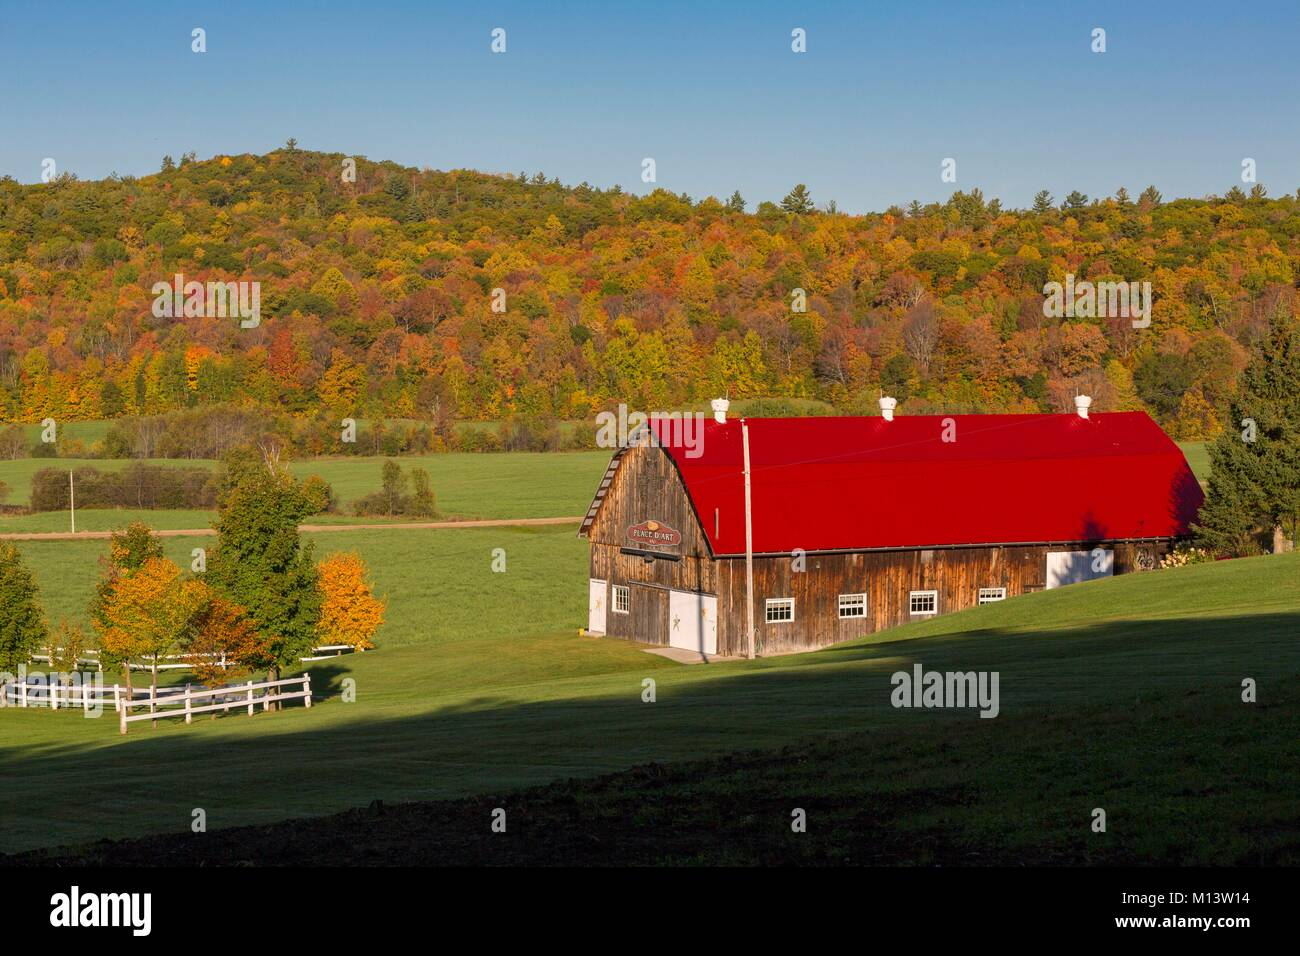 Canada, Province of Quebec, Outaouais, Pontiac region, Chichester, Northfork Inn, barn and surrounding nature in - Stock Image